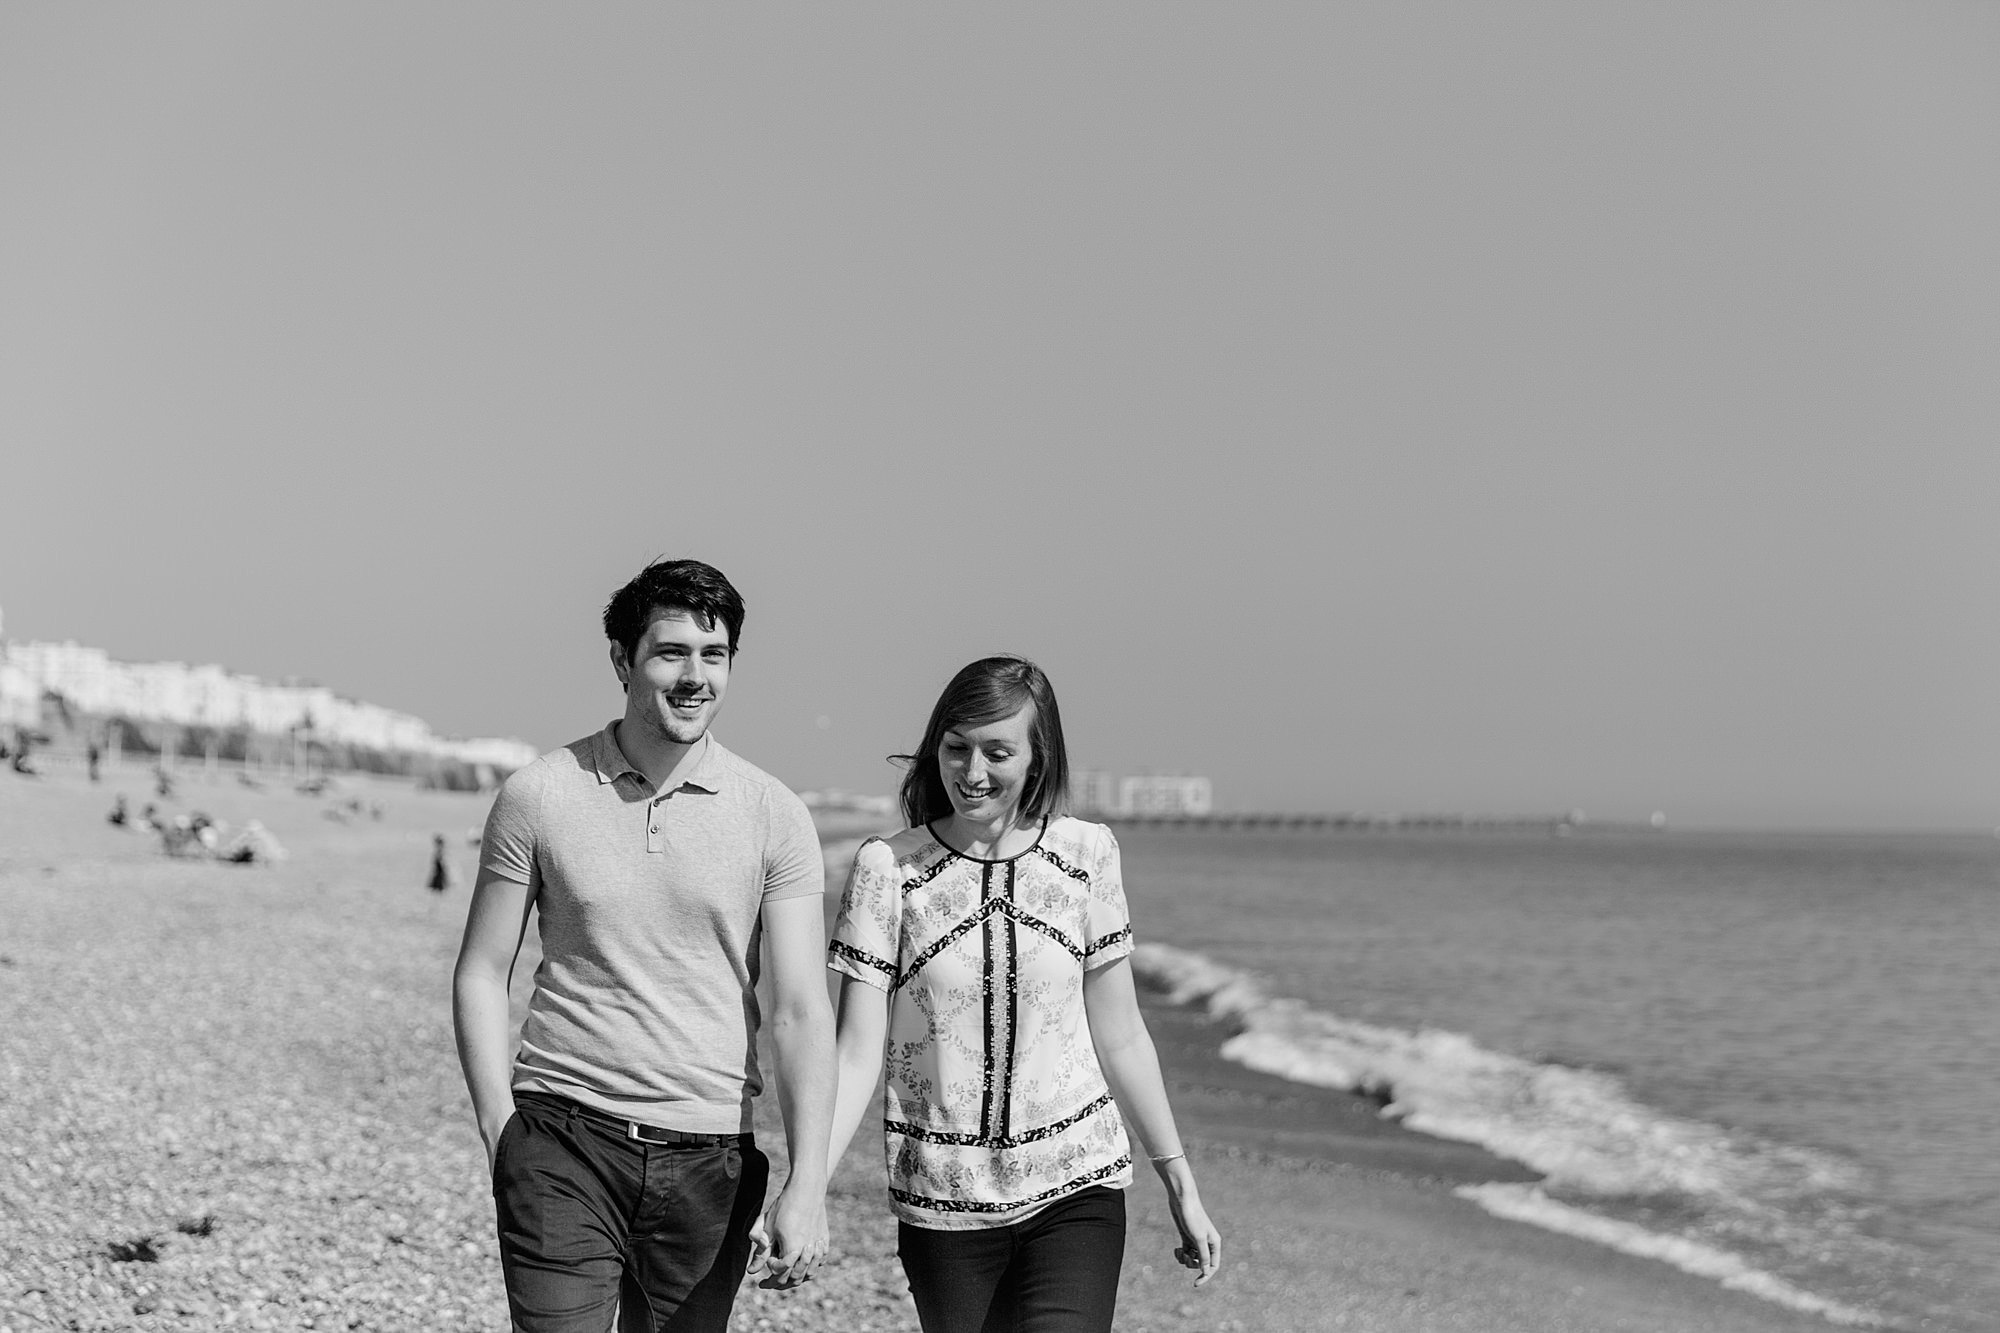 Fun Brighton engagement shoot portrait of couple walking along beach